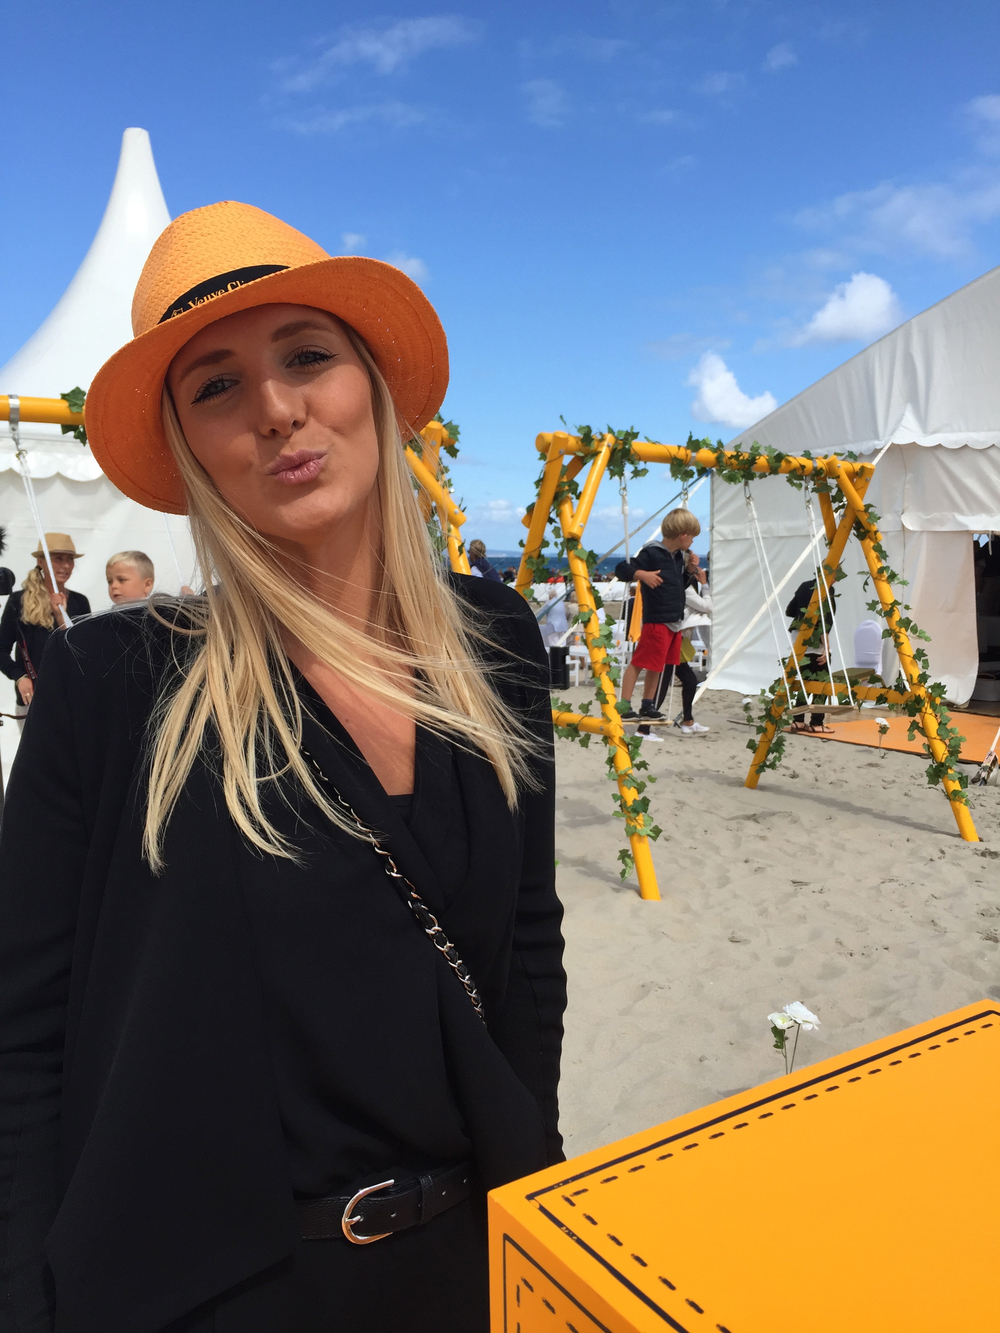 PoloPeoplePlacesBlogmakesavisitVeuveClicquot.jpg